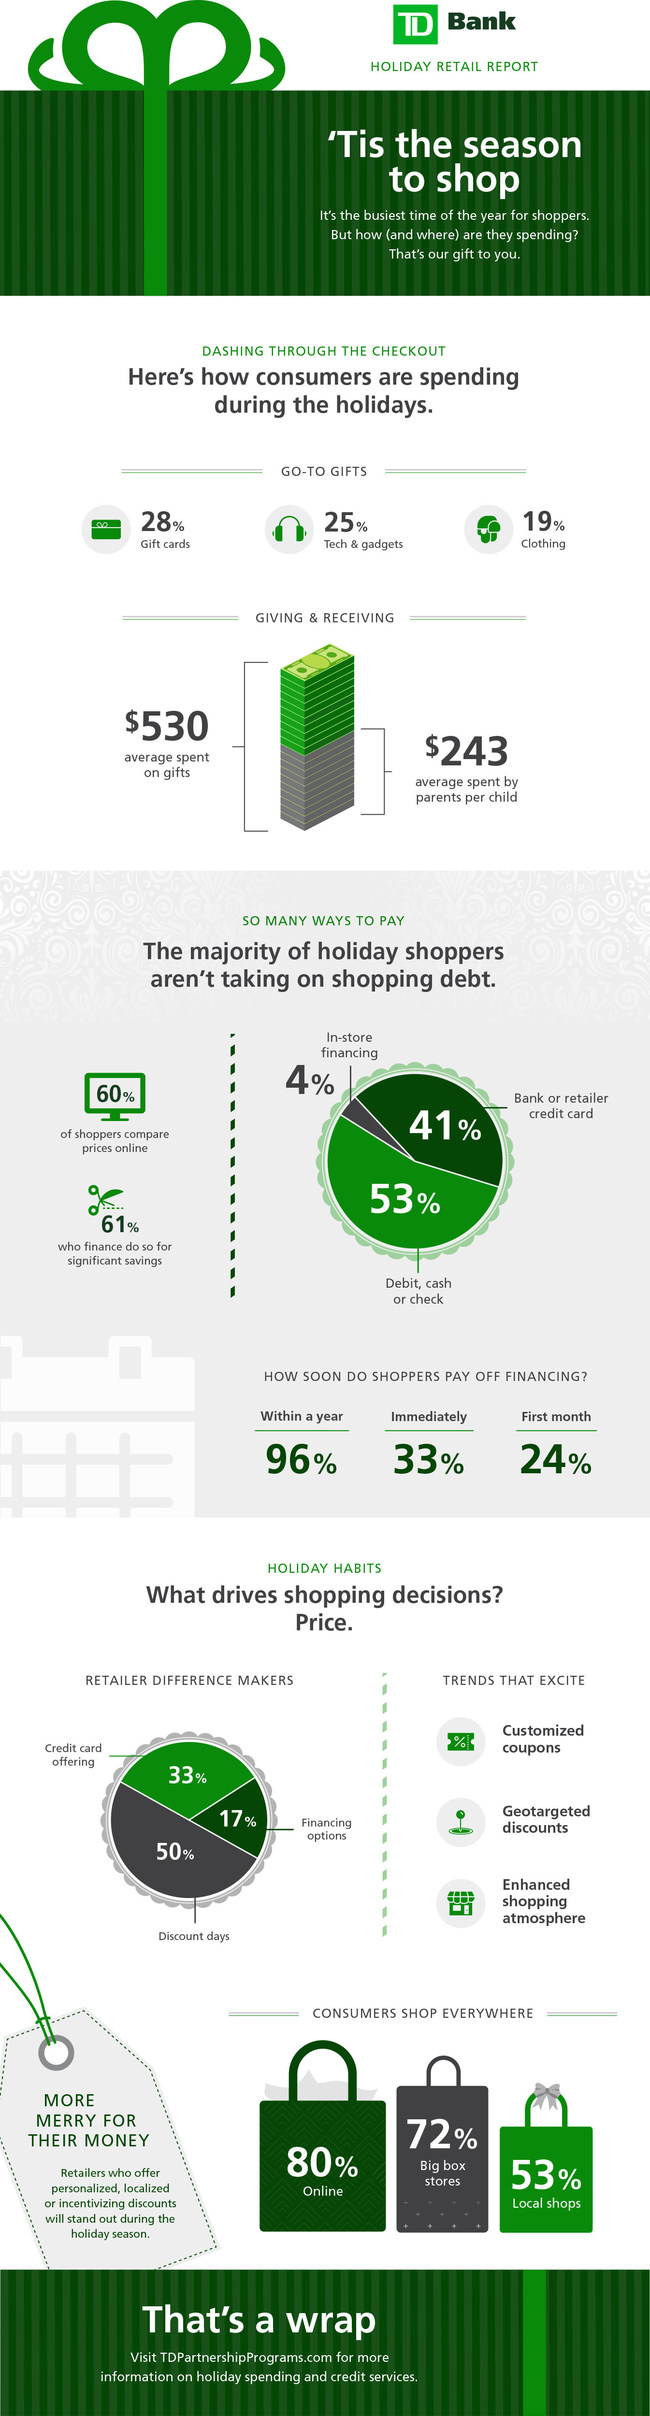 Holiday Retail Report